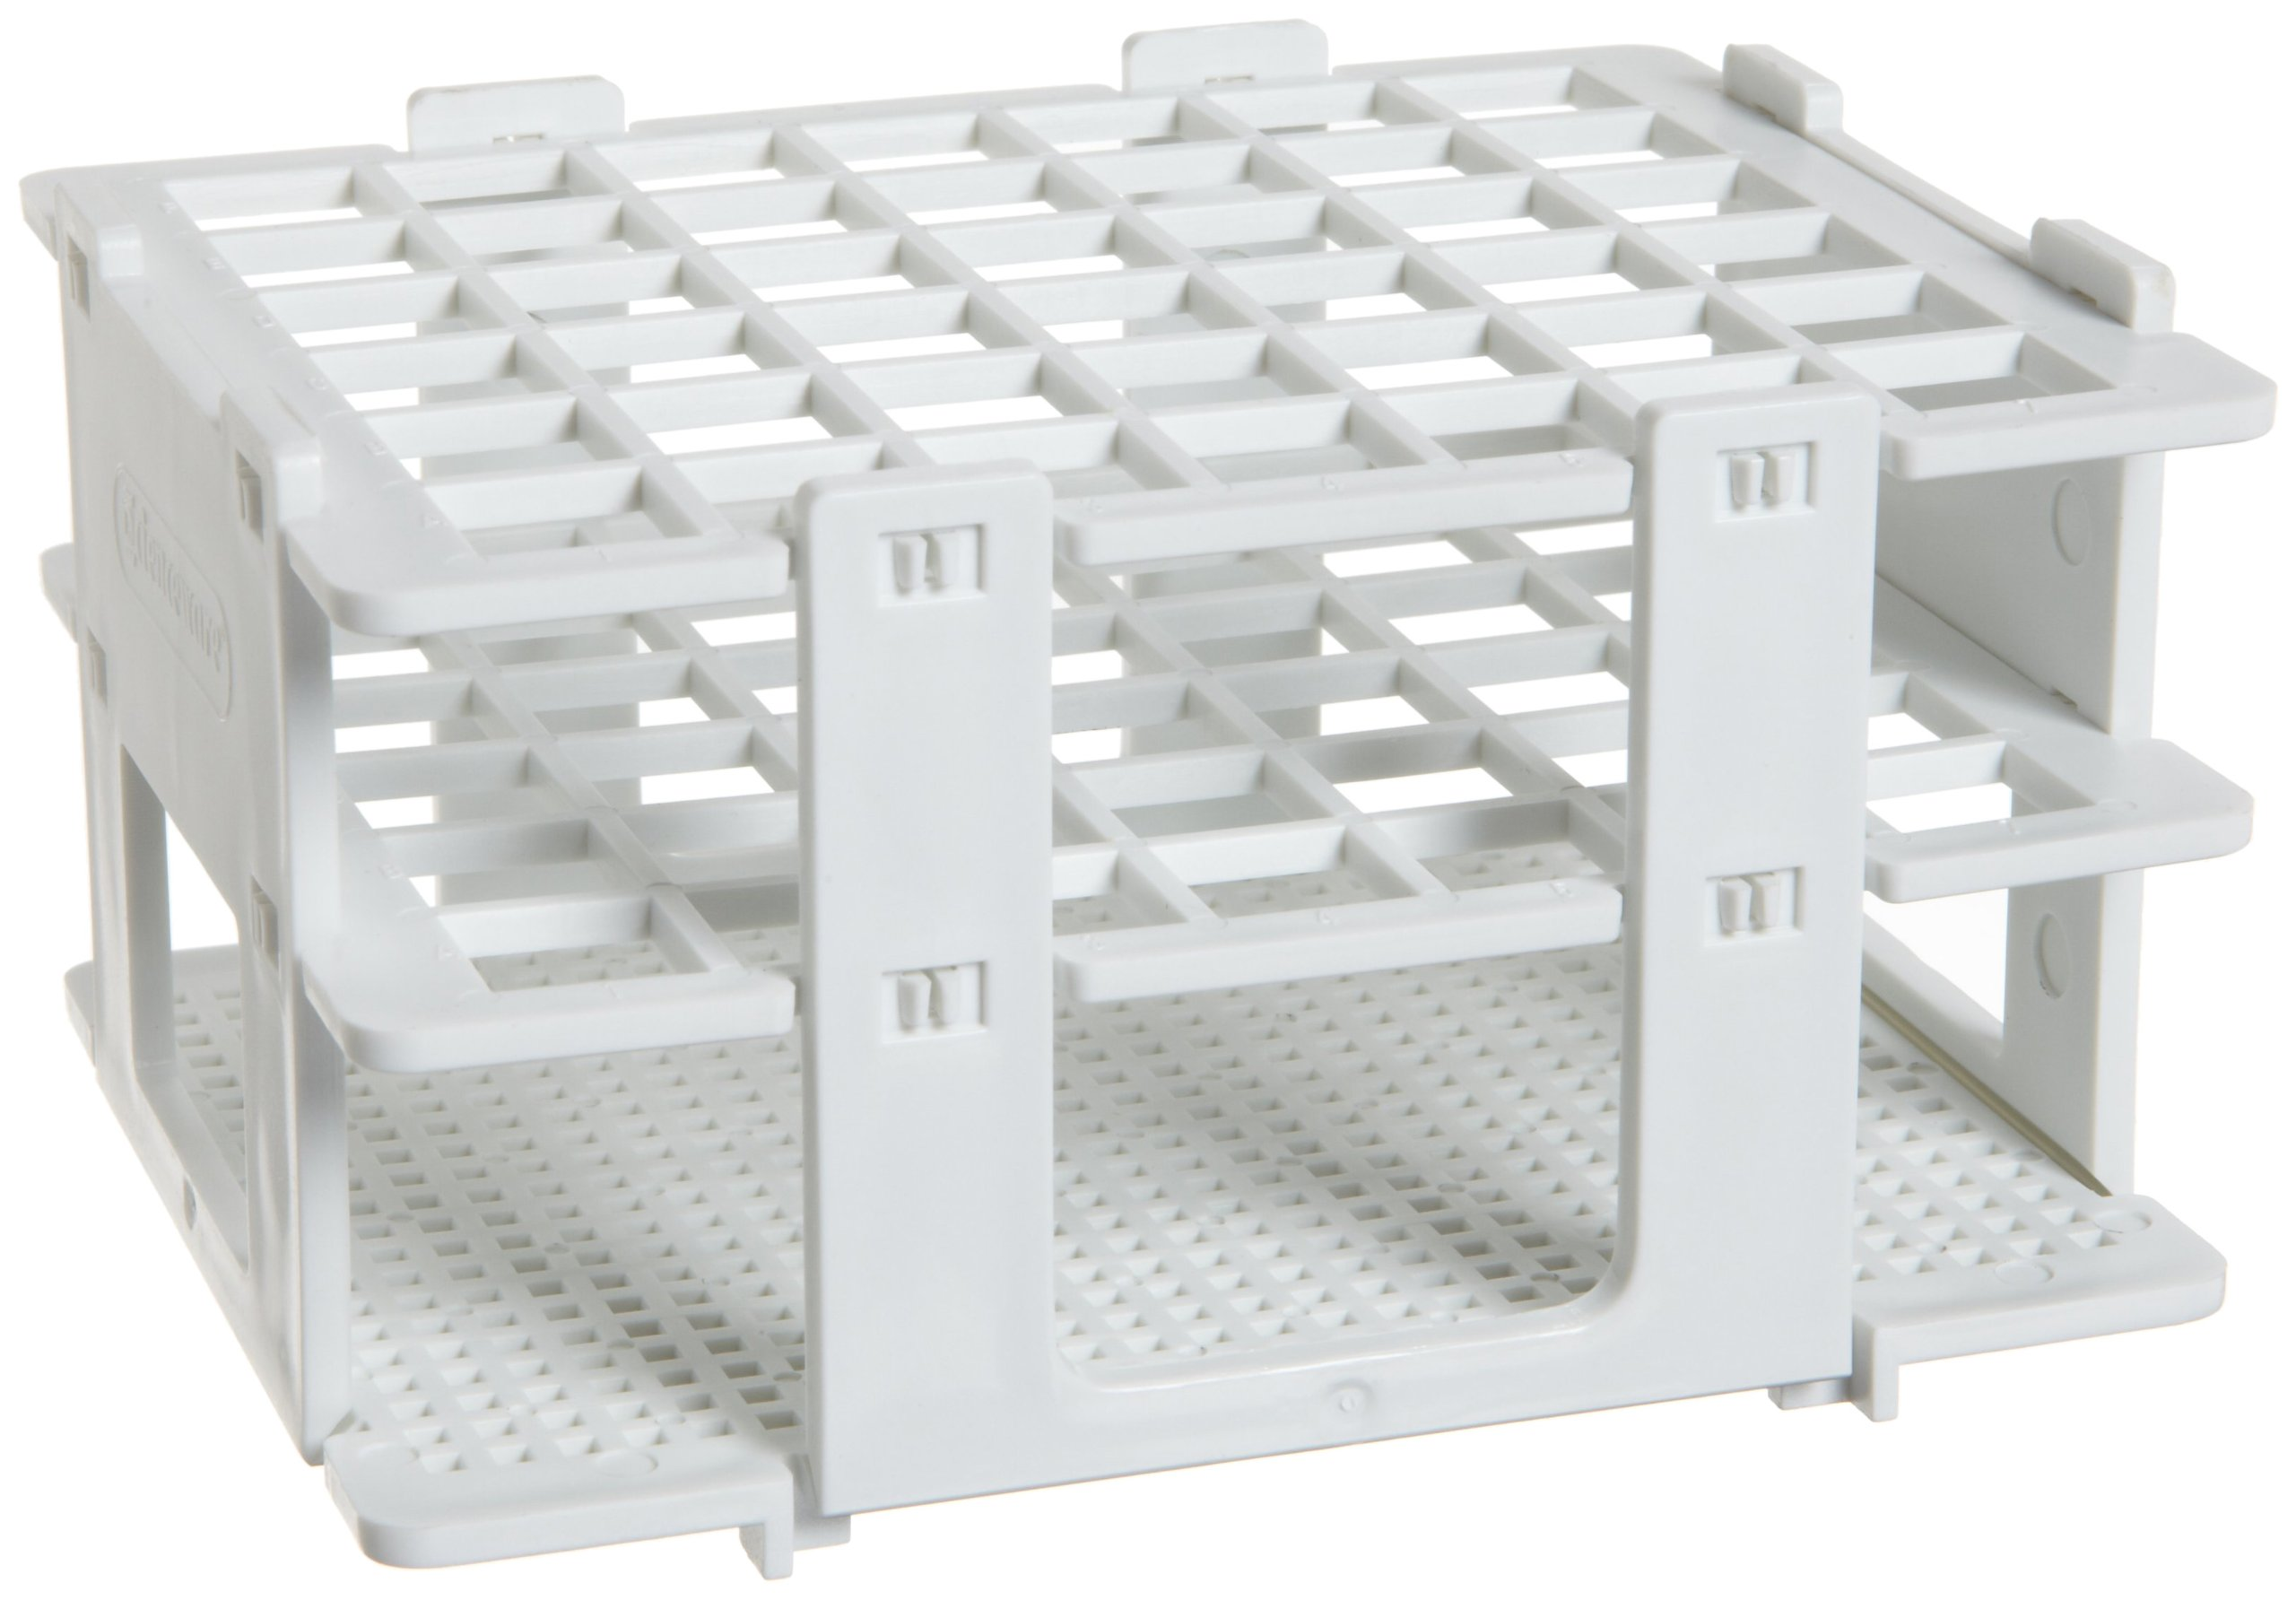 Bel-Art F18748-0013 No-Wire Test Tube Half Rack; 10-13mm, 42 Places, 5.1 x 4.1 x 2.8 in., Polypropylene by SP Scienceware